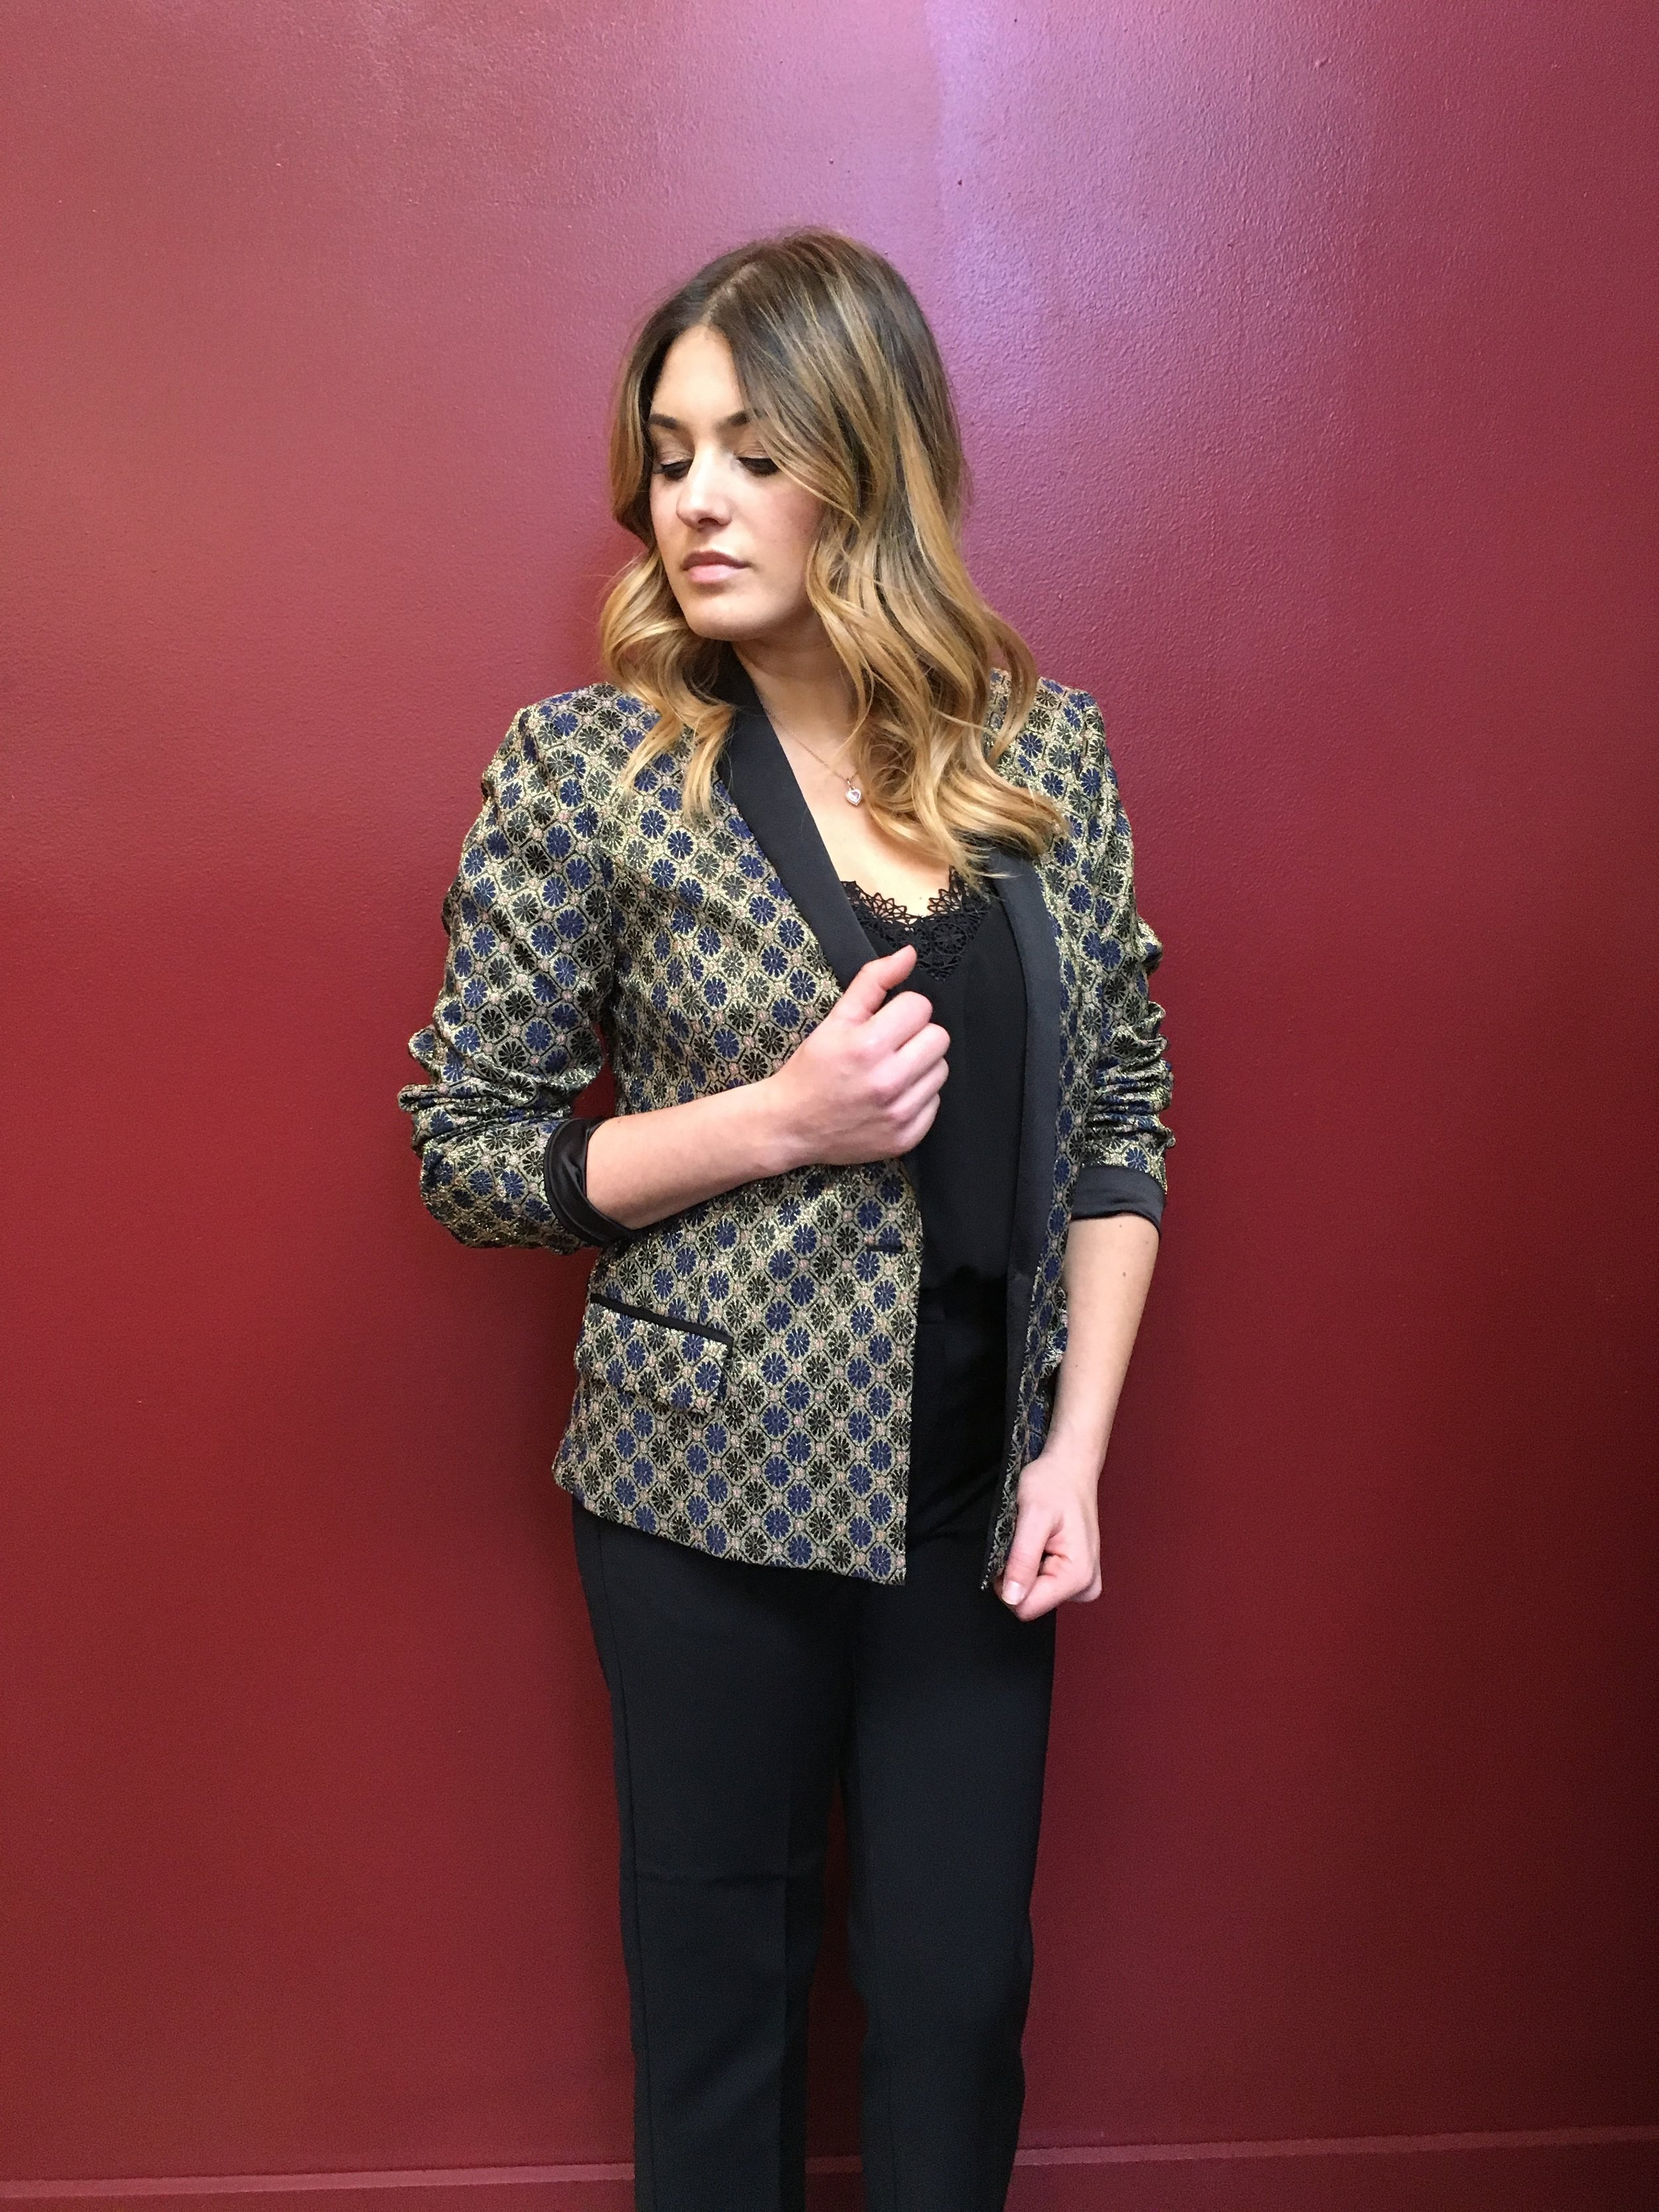 We say it every season, and every season one needs a new statement jacket! Our pick is this sparkly blazer from Maison Scotch Metallic Jacquard Blazer $299 Tiger of Sweden Stretch Cotton Pants $229